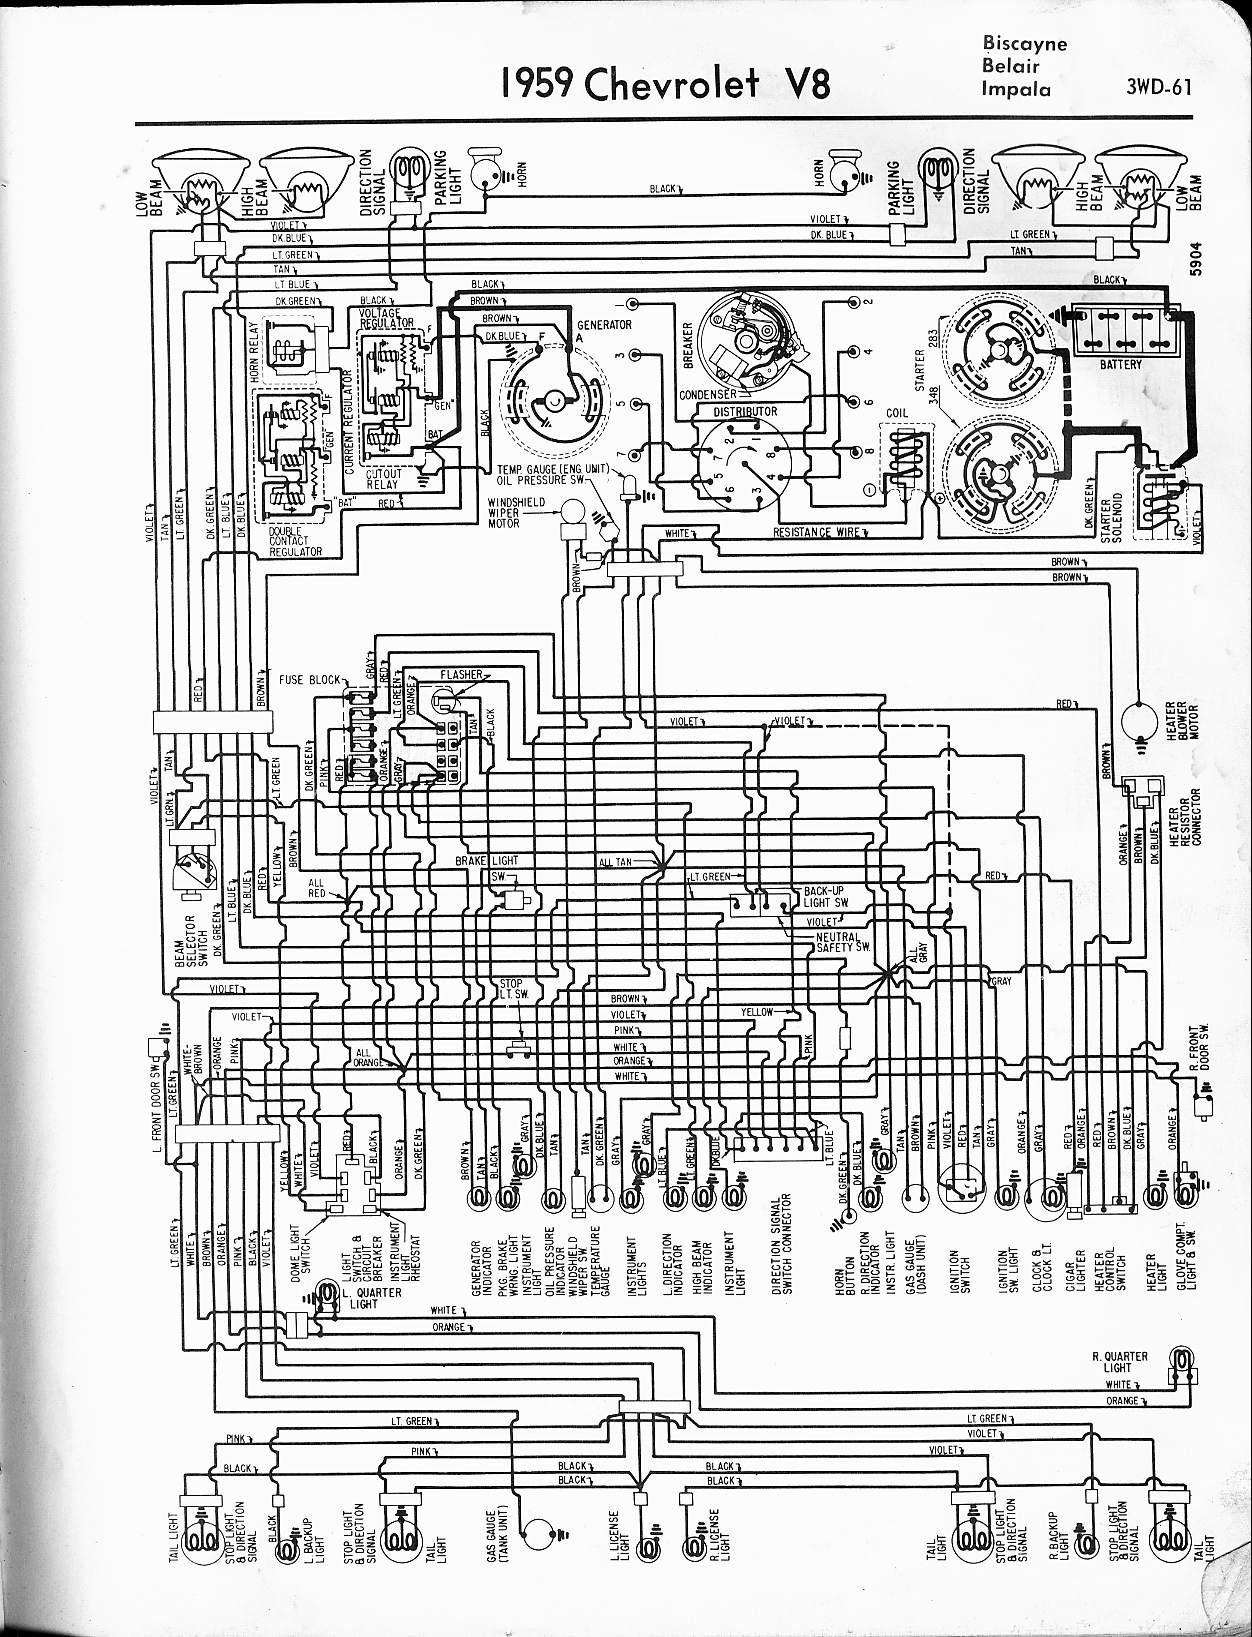 1970 Chevy Truck Wiring Diagram For 1972 6772 57 65 Diagrams Of